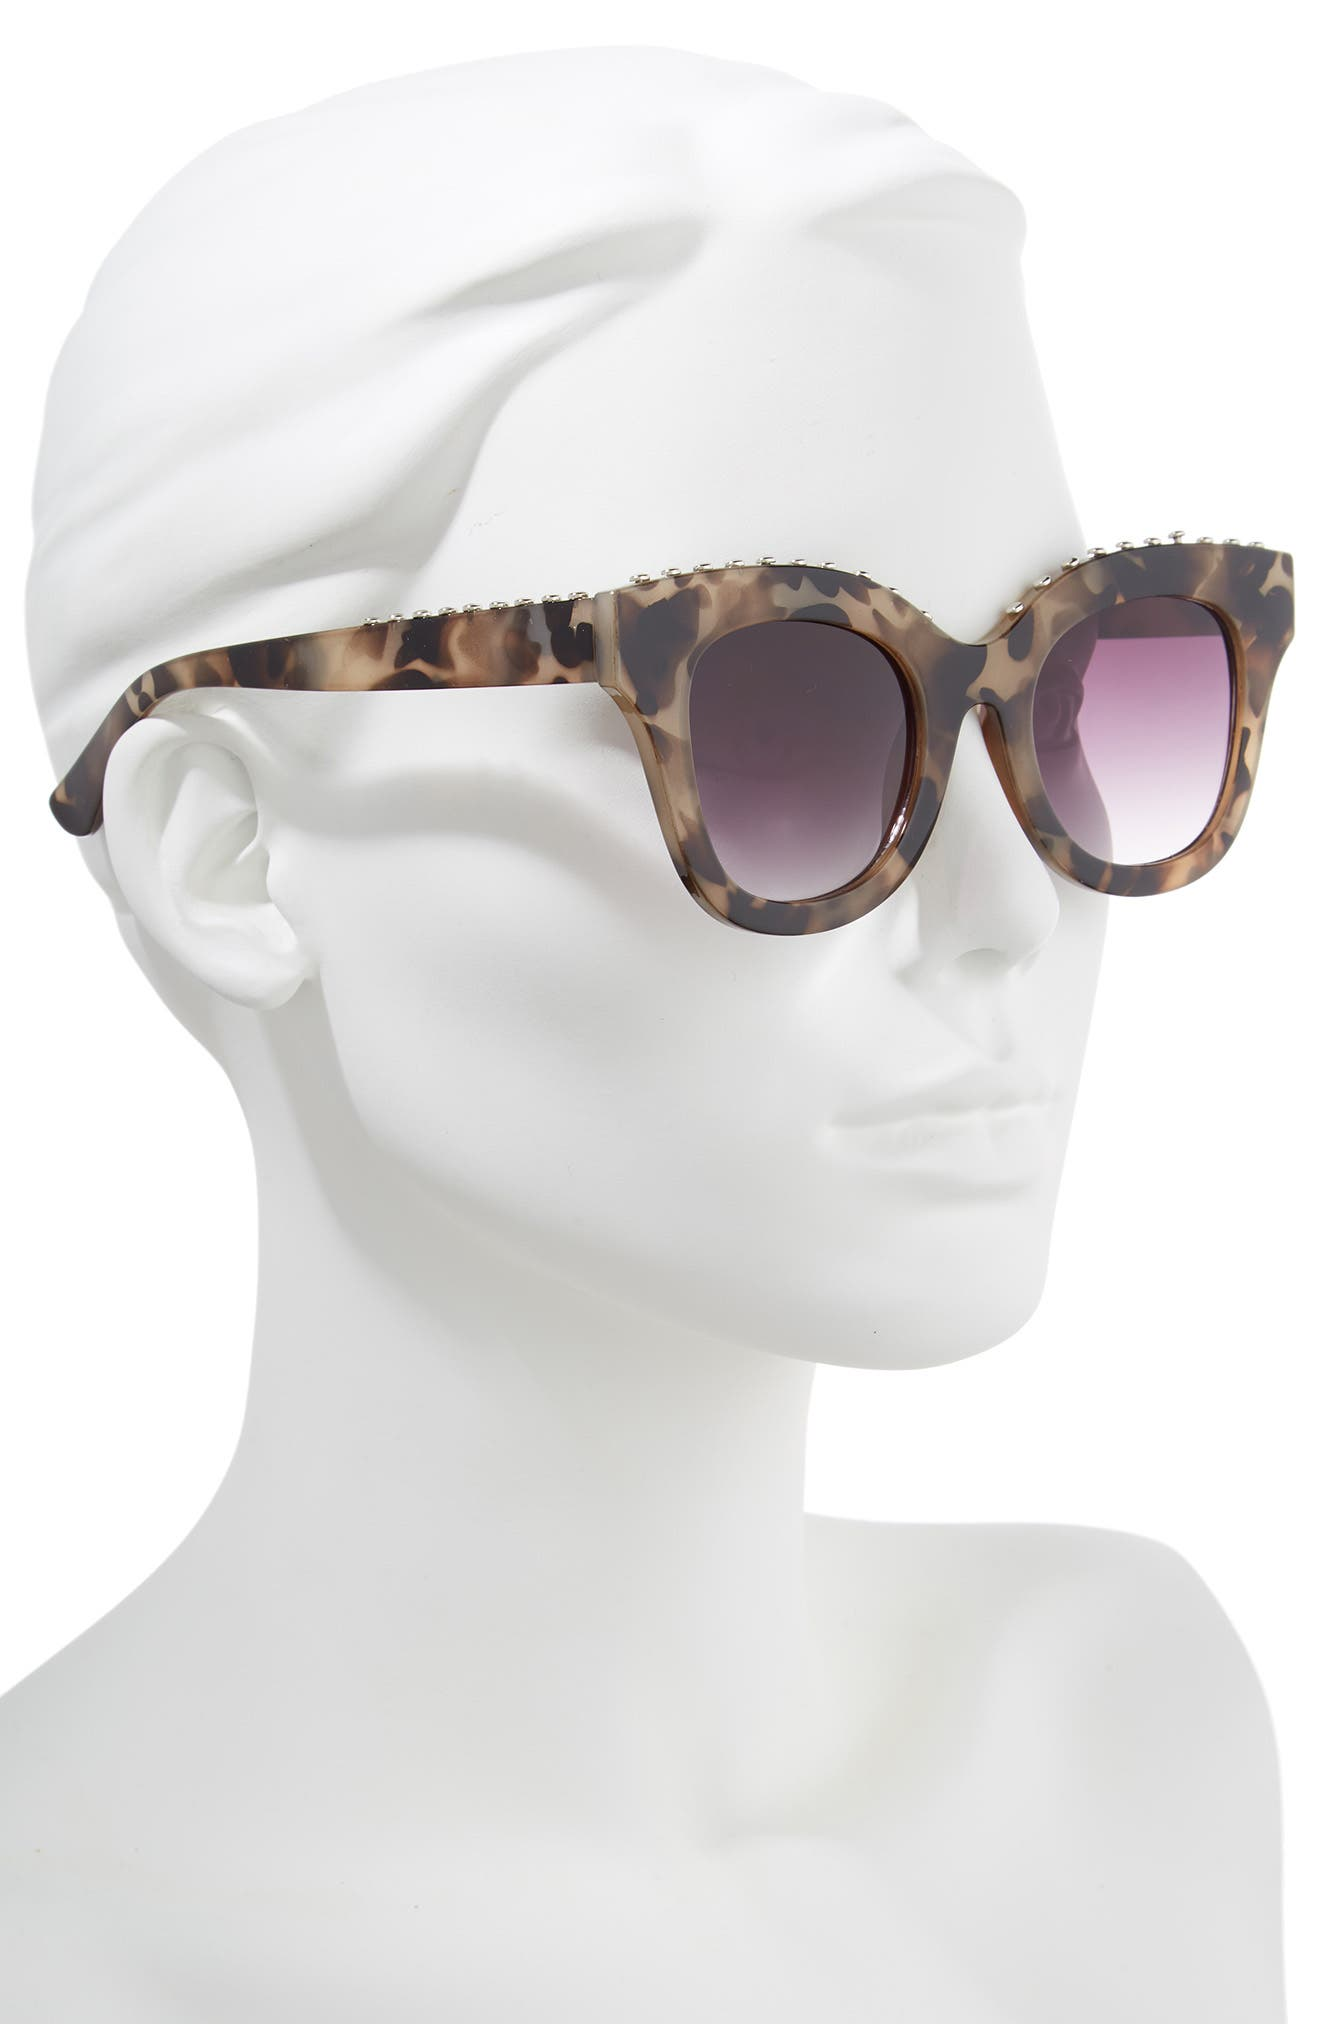 48mm Studded Sunglasses,                             Alternate thumbnail 2, color,                             200